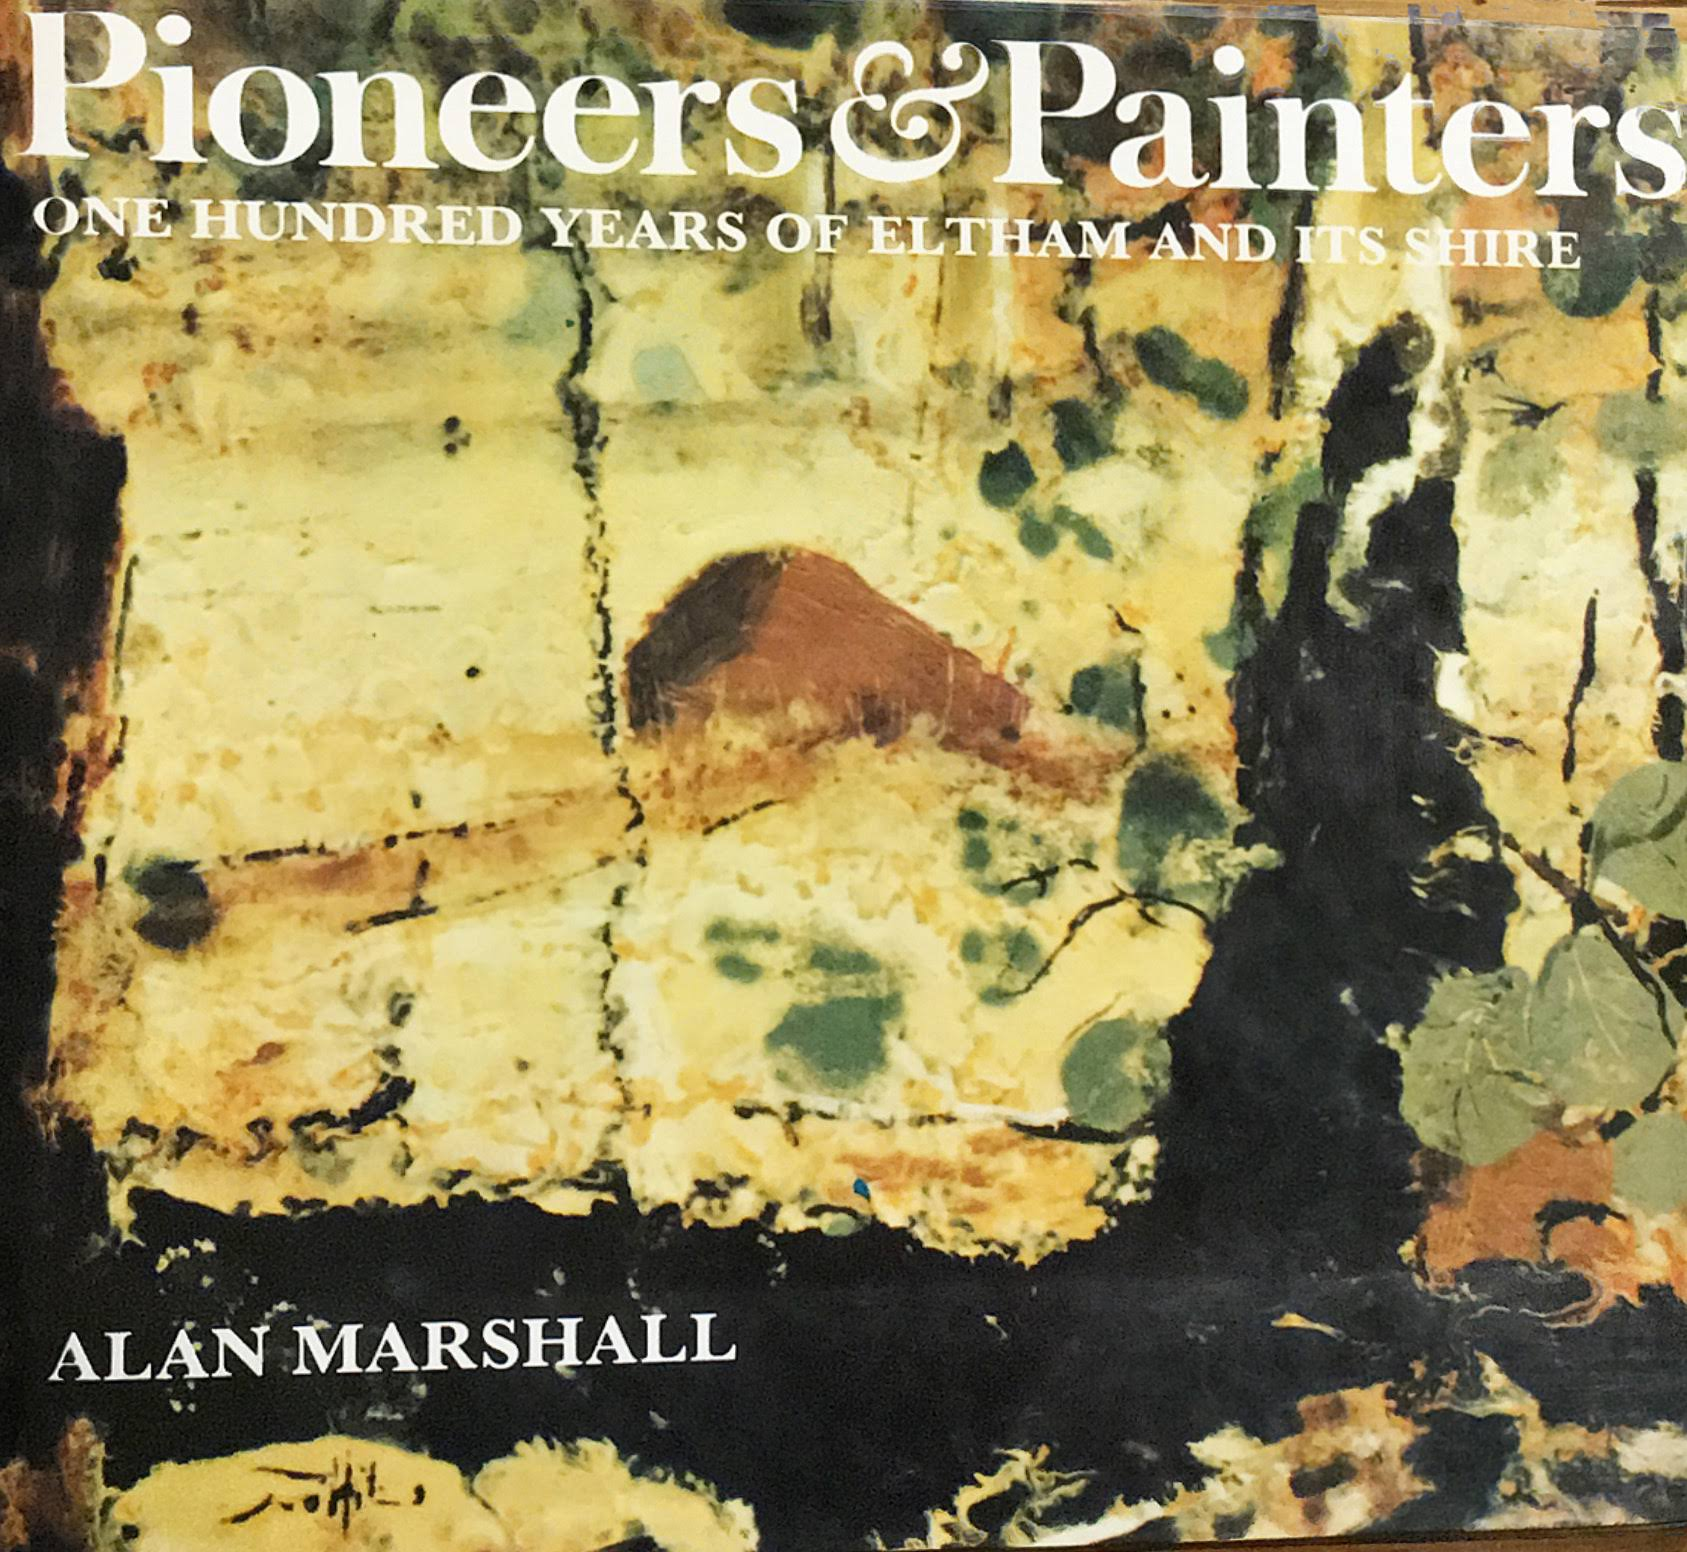 Pioneers and Painters: One hundred years of Eltham and Its Shire by the author's friend, Alan Marshall, published in 1971